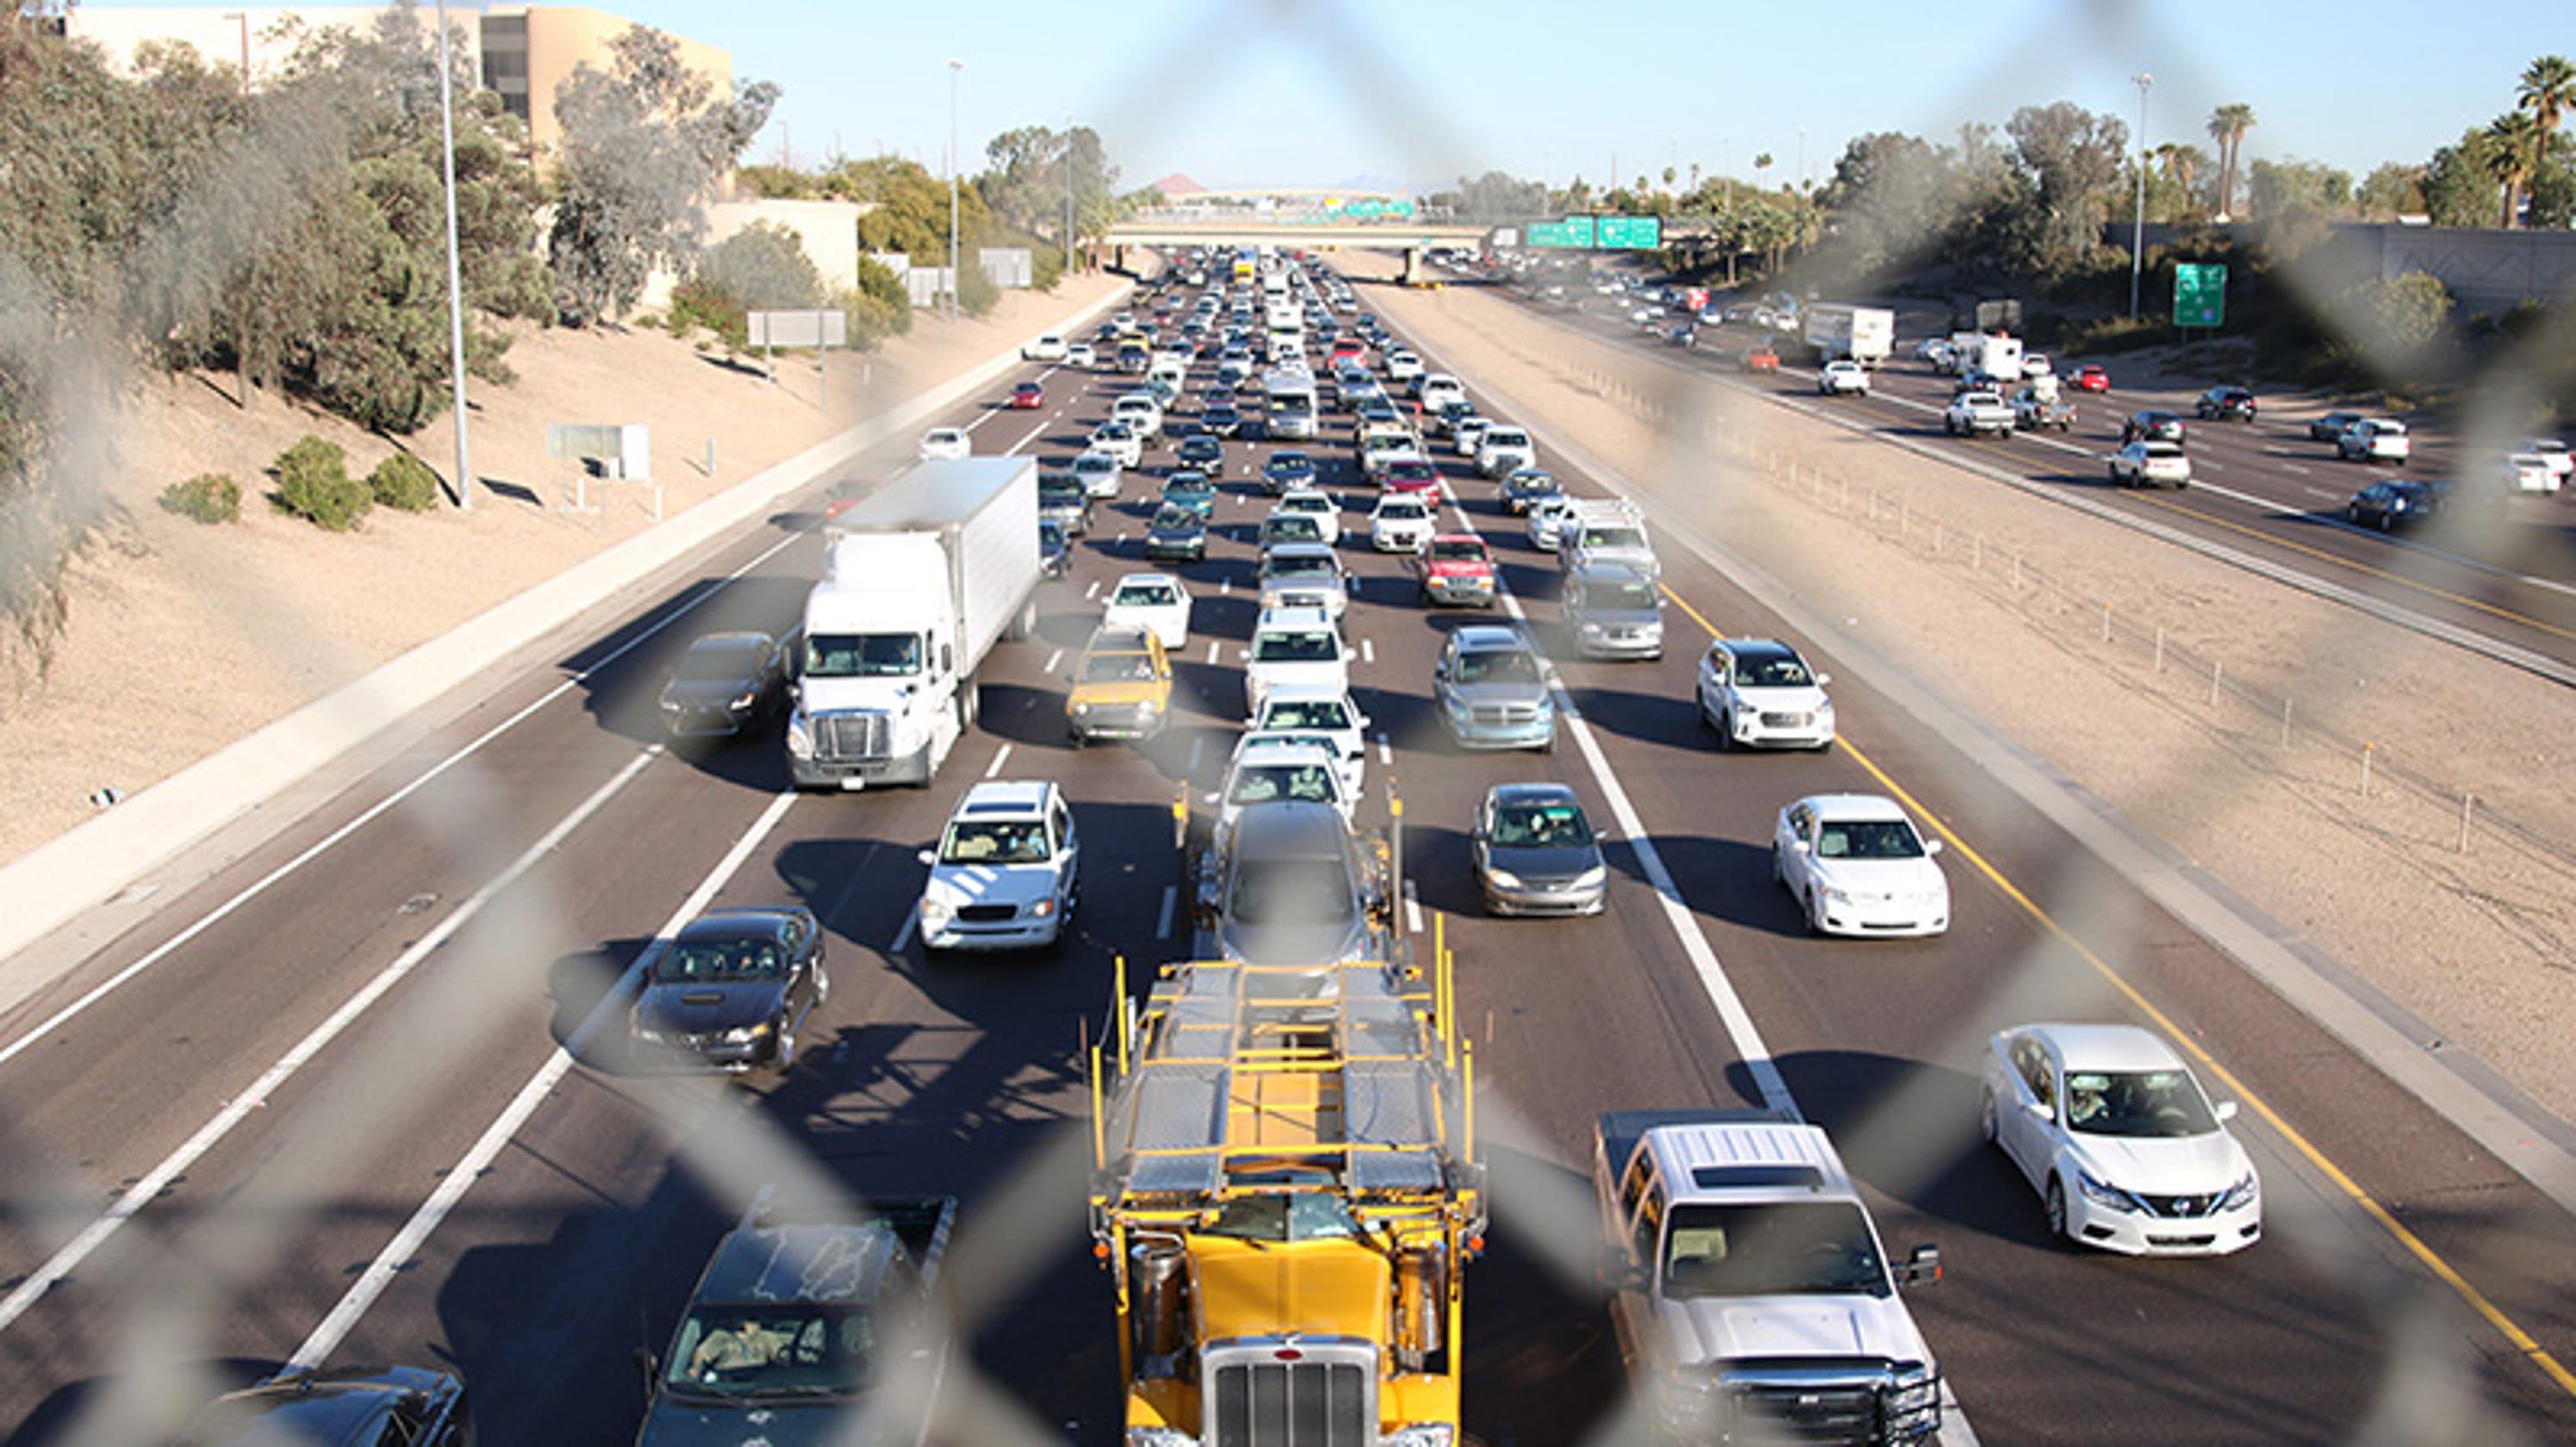 ADOT announced no road closures for Memorial Day weekend